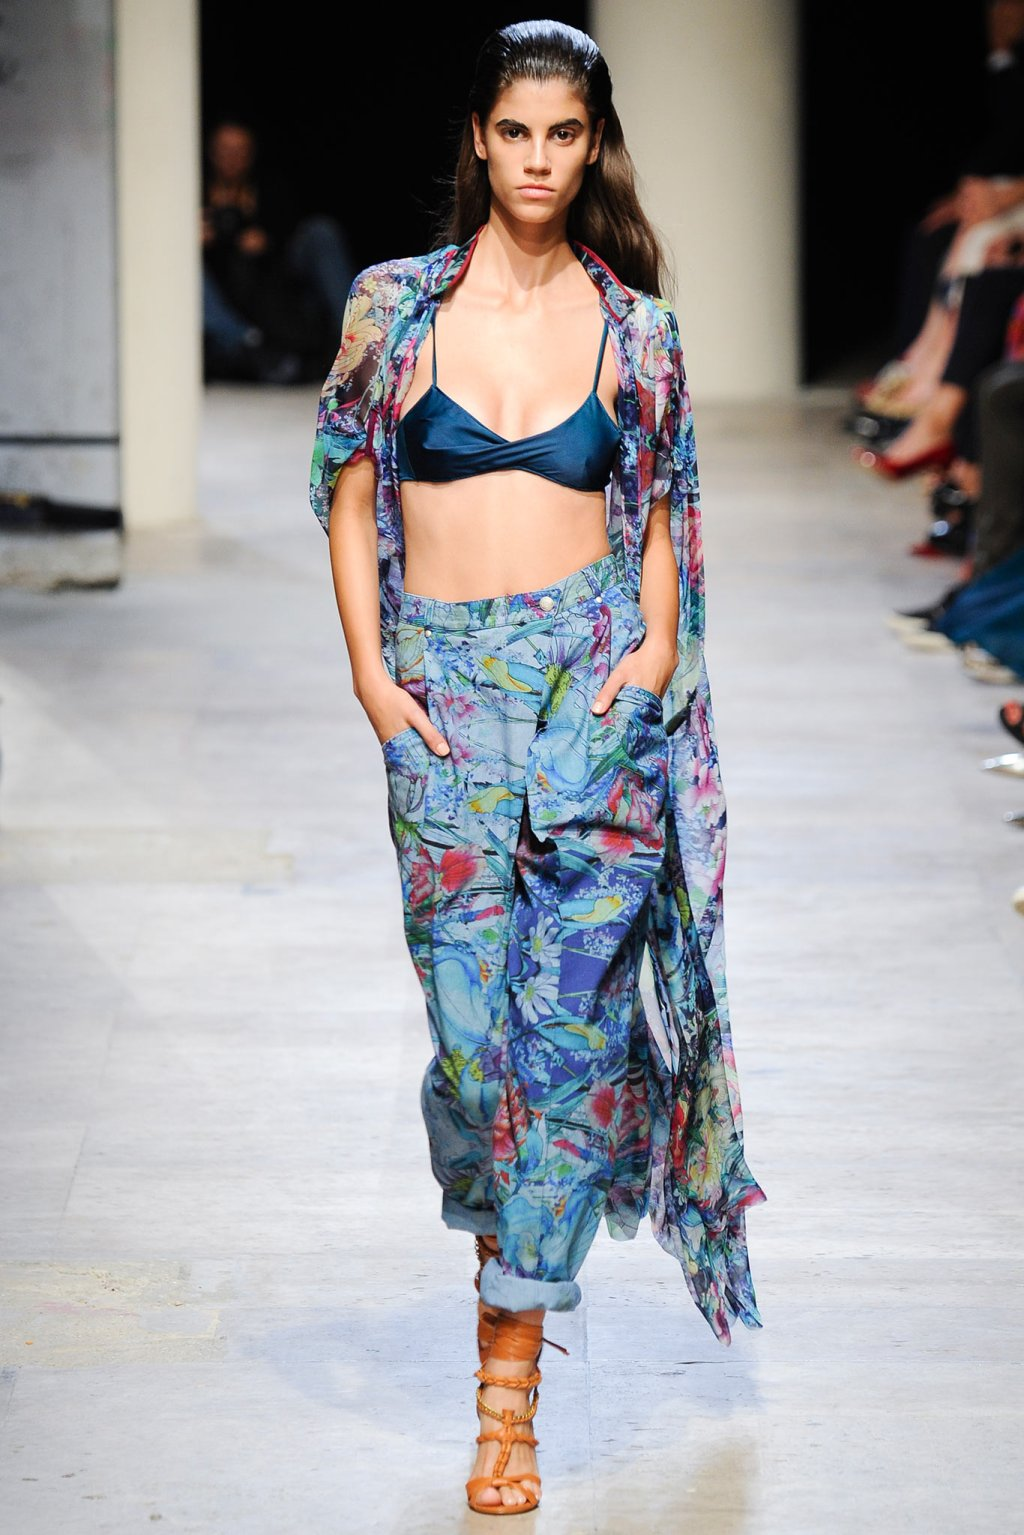 LEONARD FLORAL PRINTED DENIM JEANS MODEL SPRING SUMMER 2015 FASHION WEEK